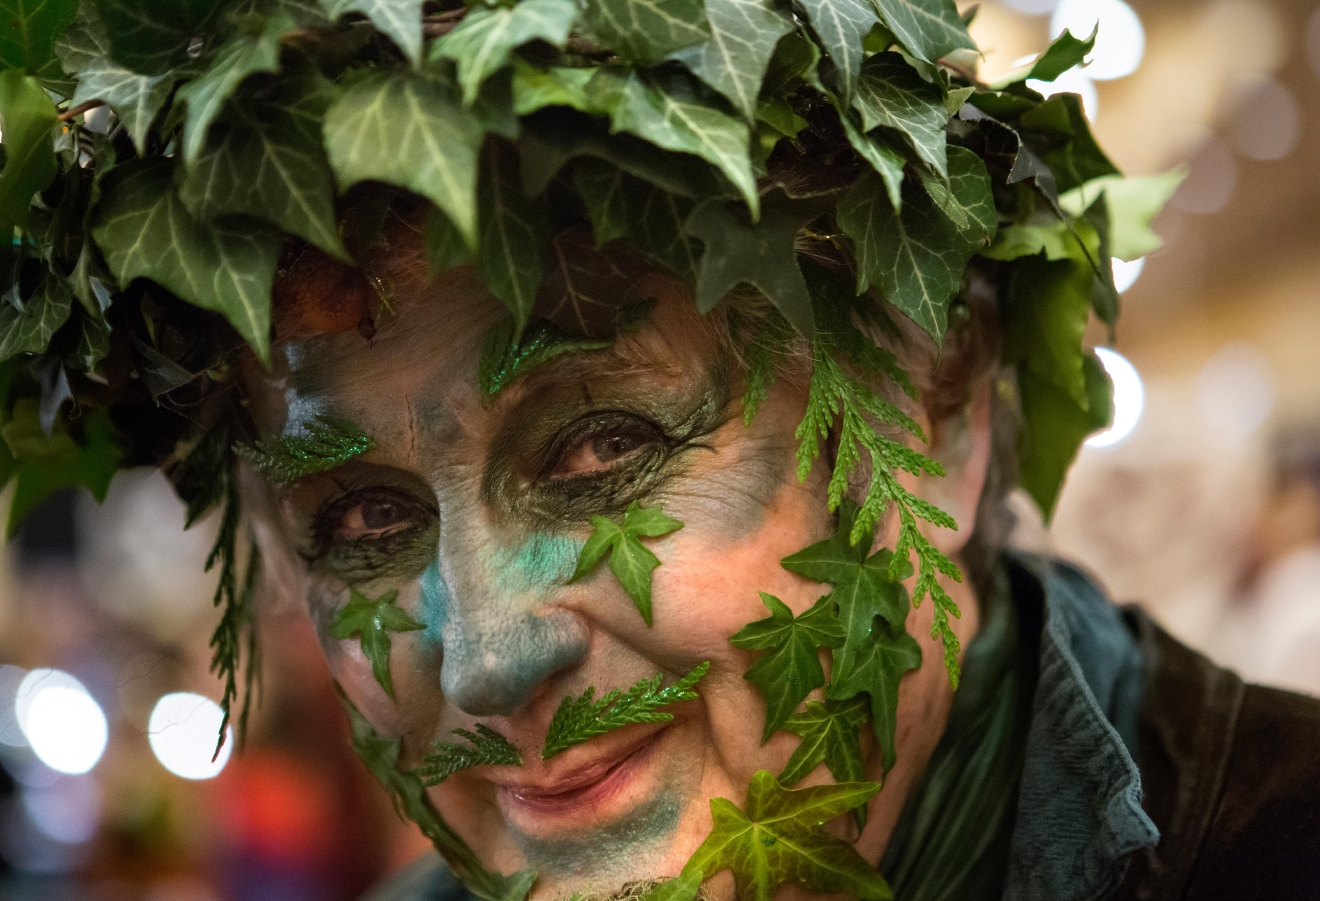 Oregon resident Billy Scudder dresses as The Green Man, which he says is a symbol of spring, at Mythicworlds Convention and Masquerades. Scudder has been dressing in the same style costume since 1974. (Sy Bean / Seattle Refined)